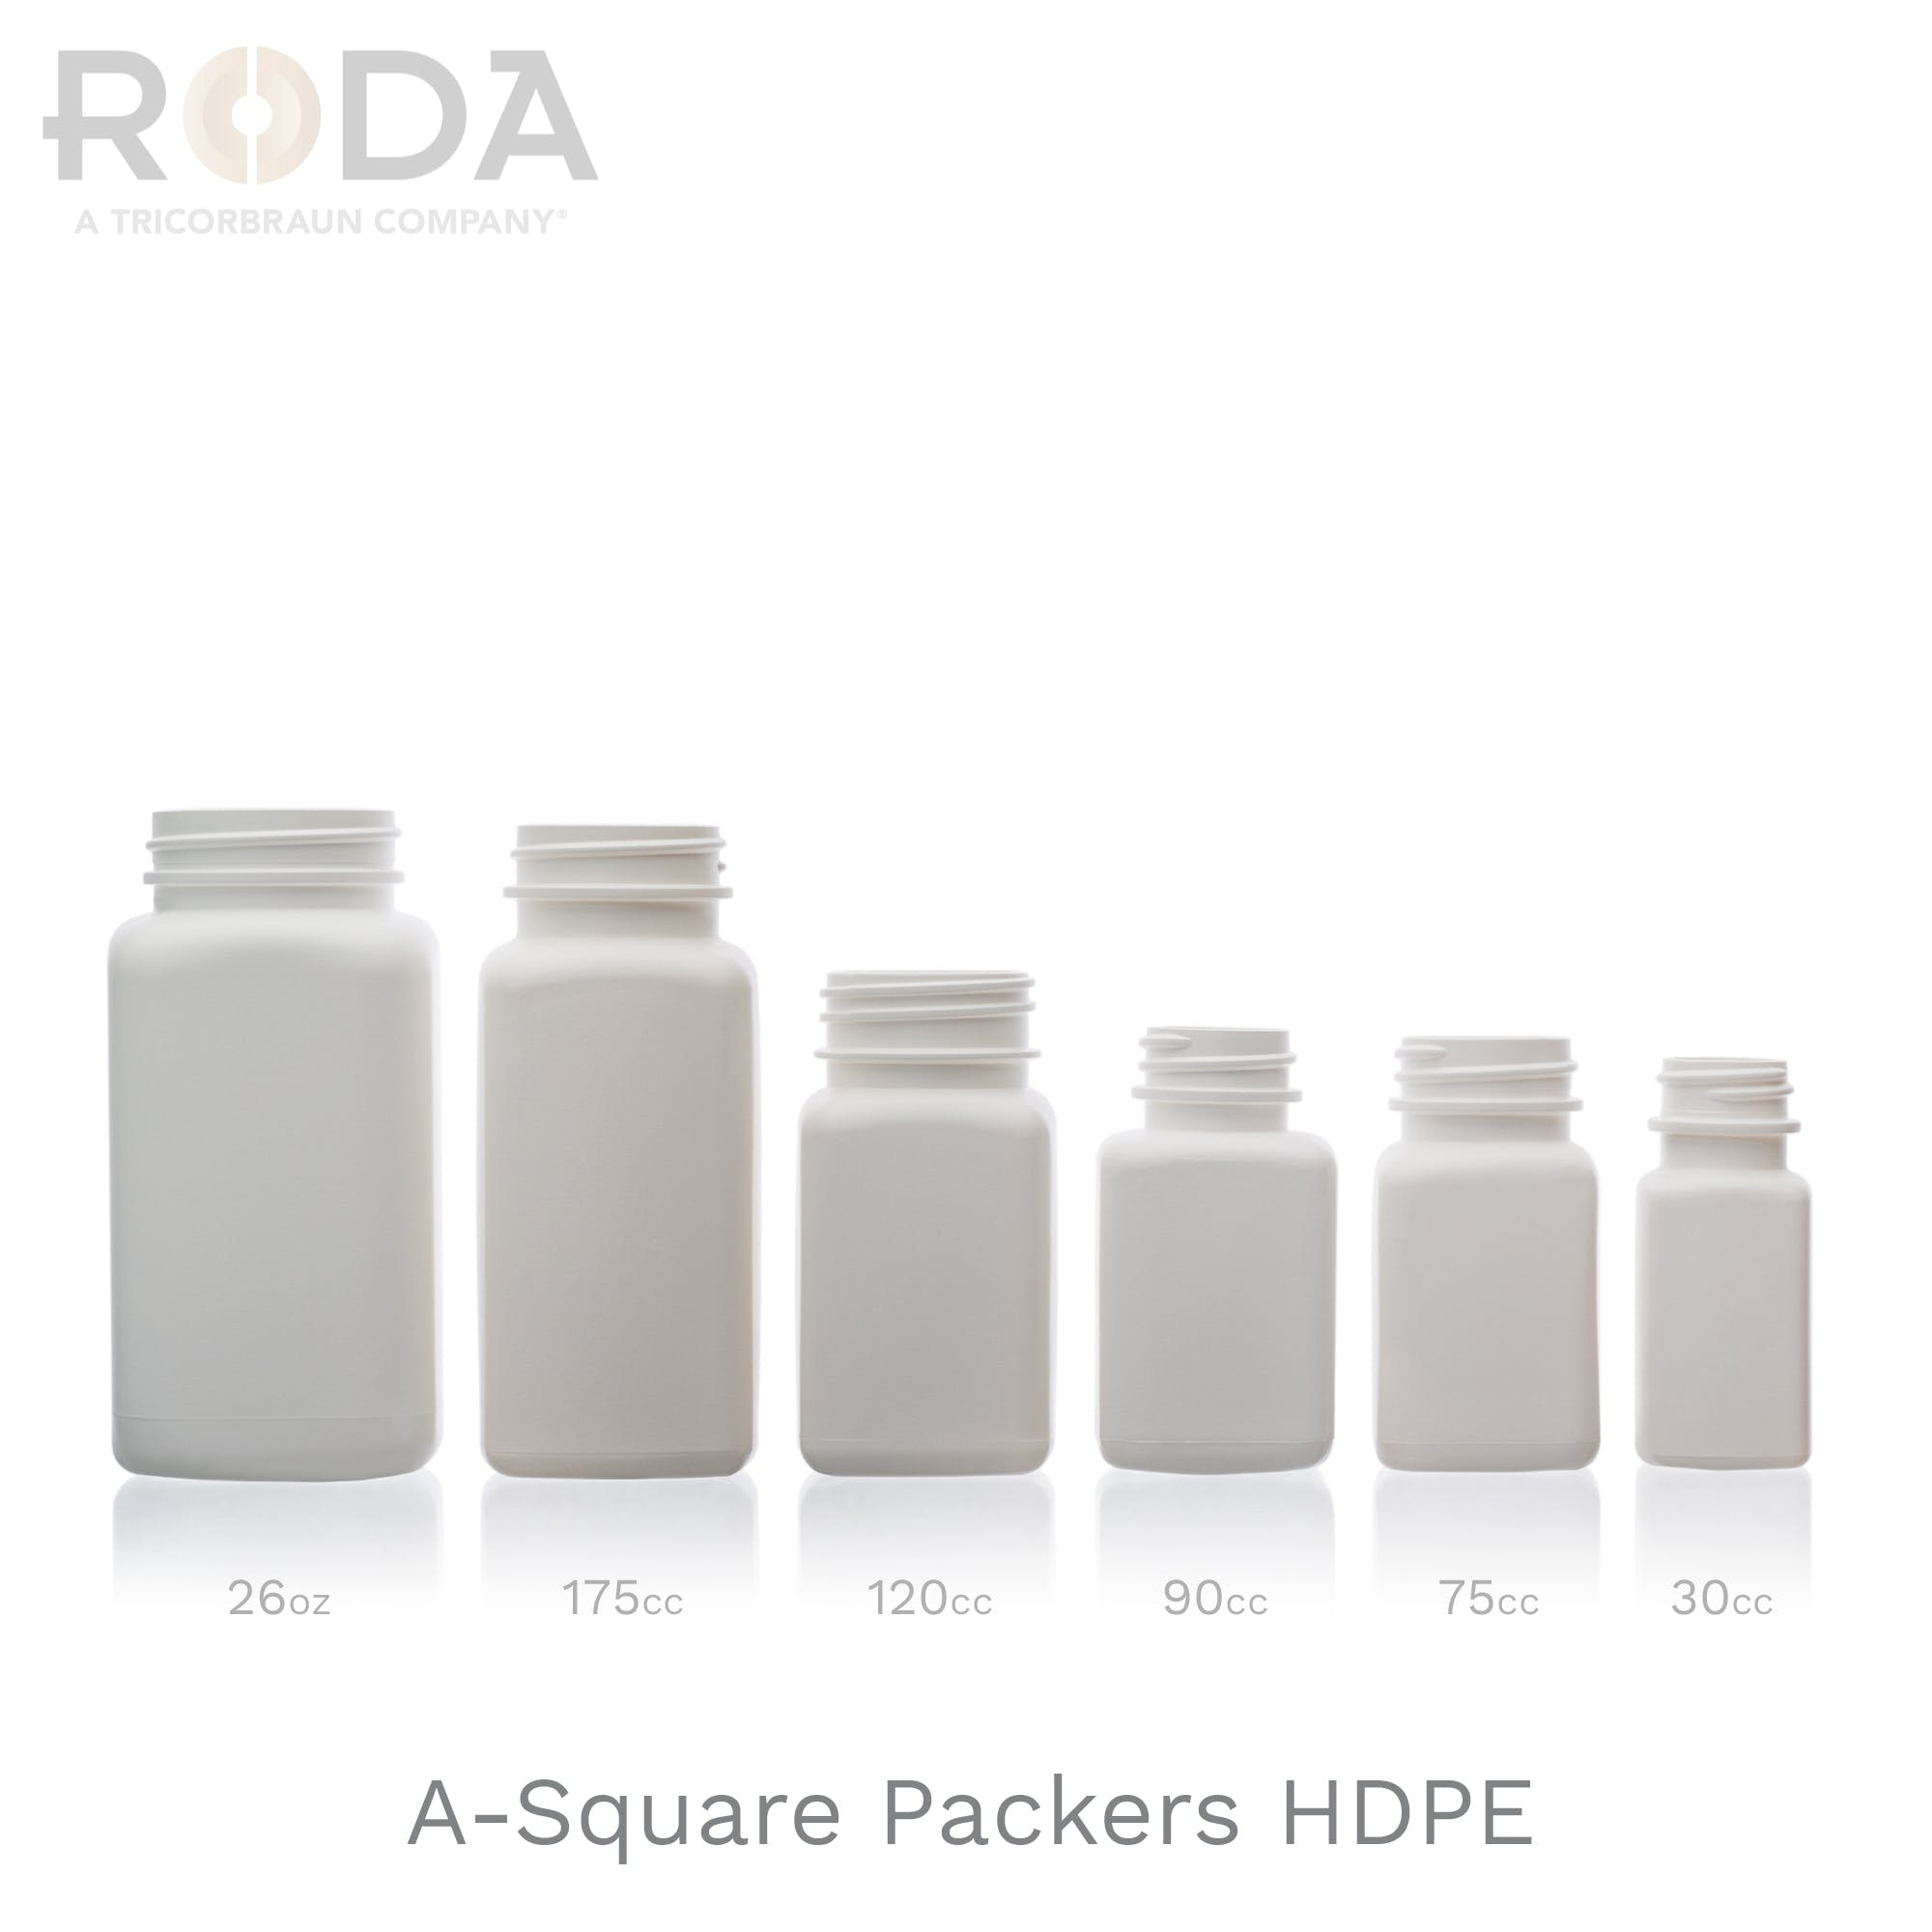 A-Square Packers HDPE